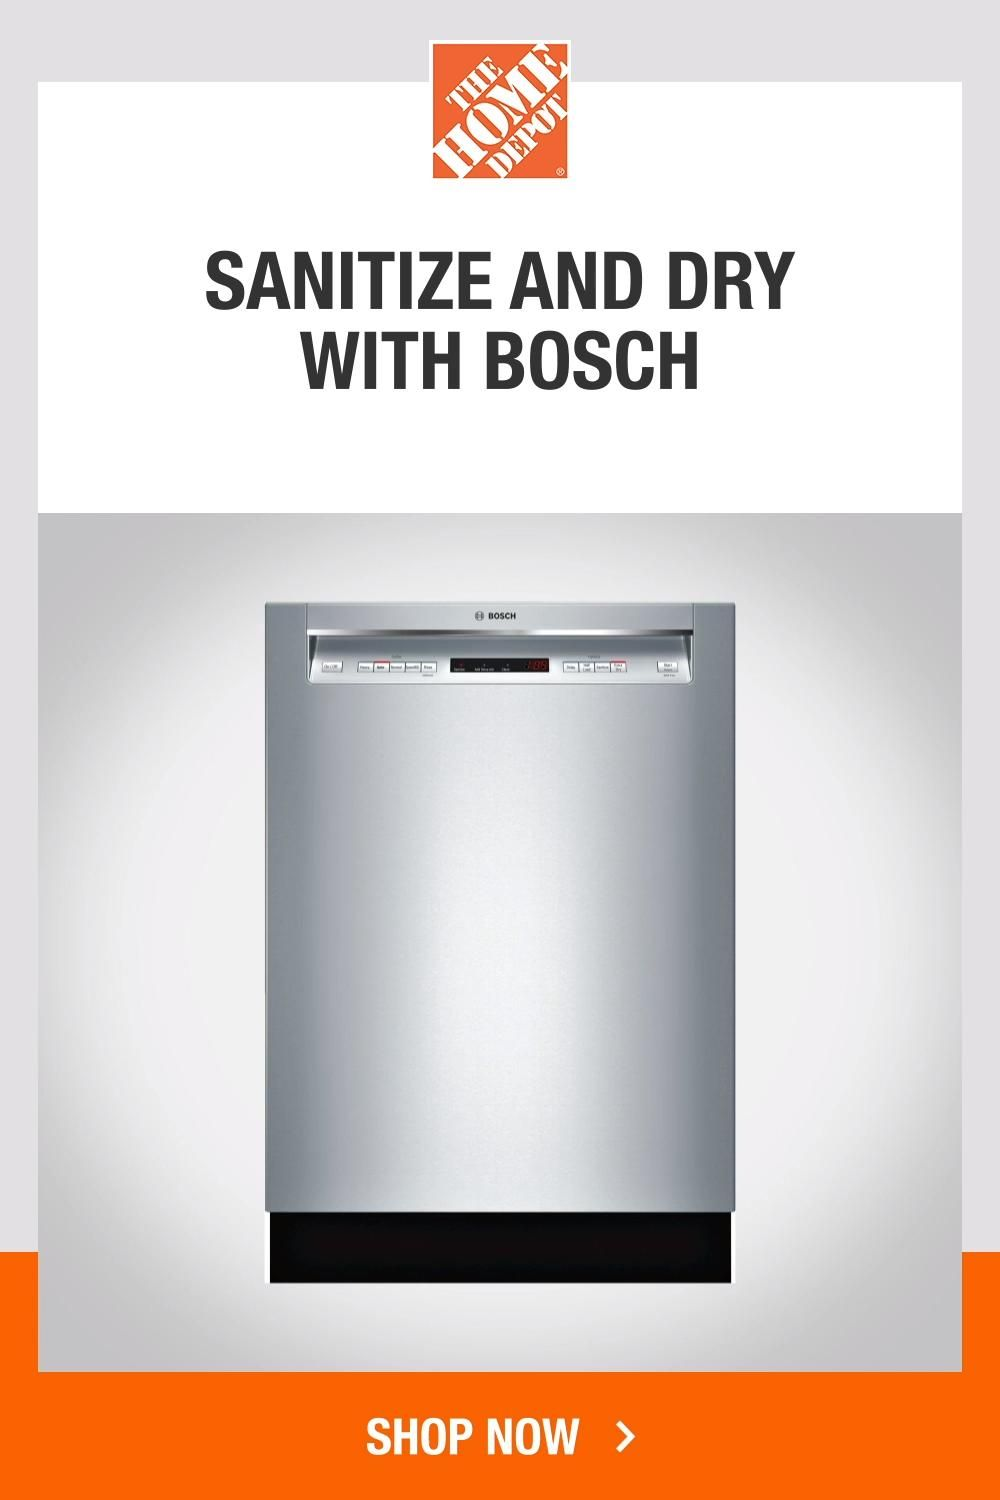 Bosch 300 Series 24 In Stainless Steel Front Control Tall Tub Dishwasher With Stainless Steel Tub And 3rd Rack 44dba Shem63w55n The Home Depot Video Video Steel Tub Kitchen Room Design Dishwasher Repair